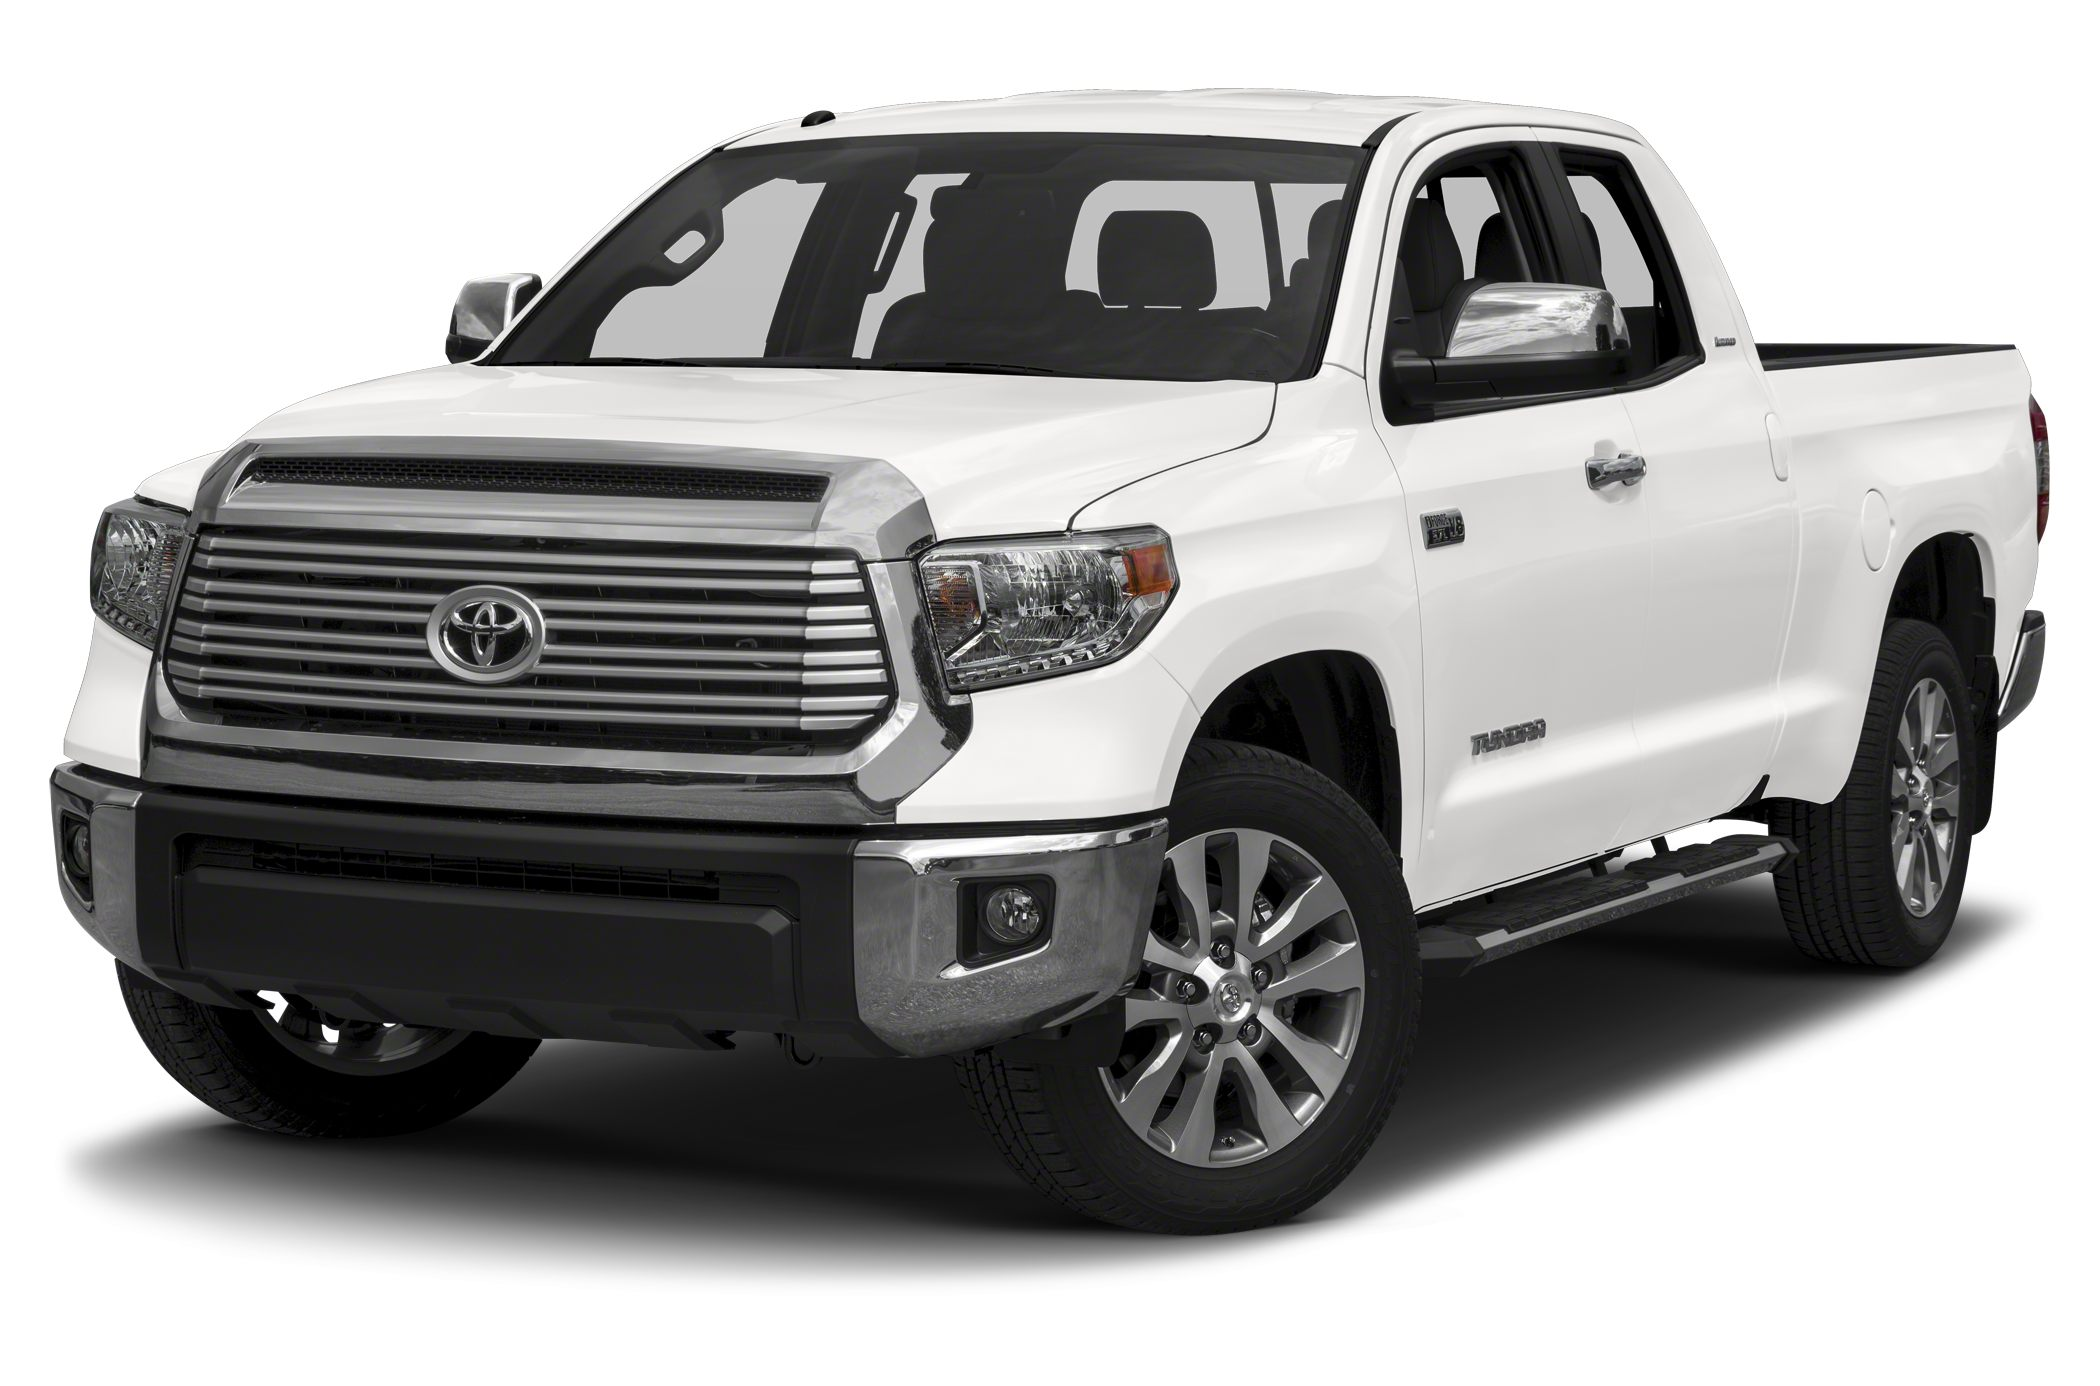 2017 Toyota Tundra Limited 5 7l V8 4x4 Double Cab 6 Ft Box 145 7 In Wb Specs And Prices